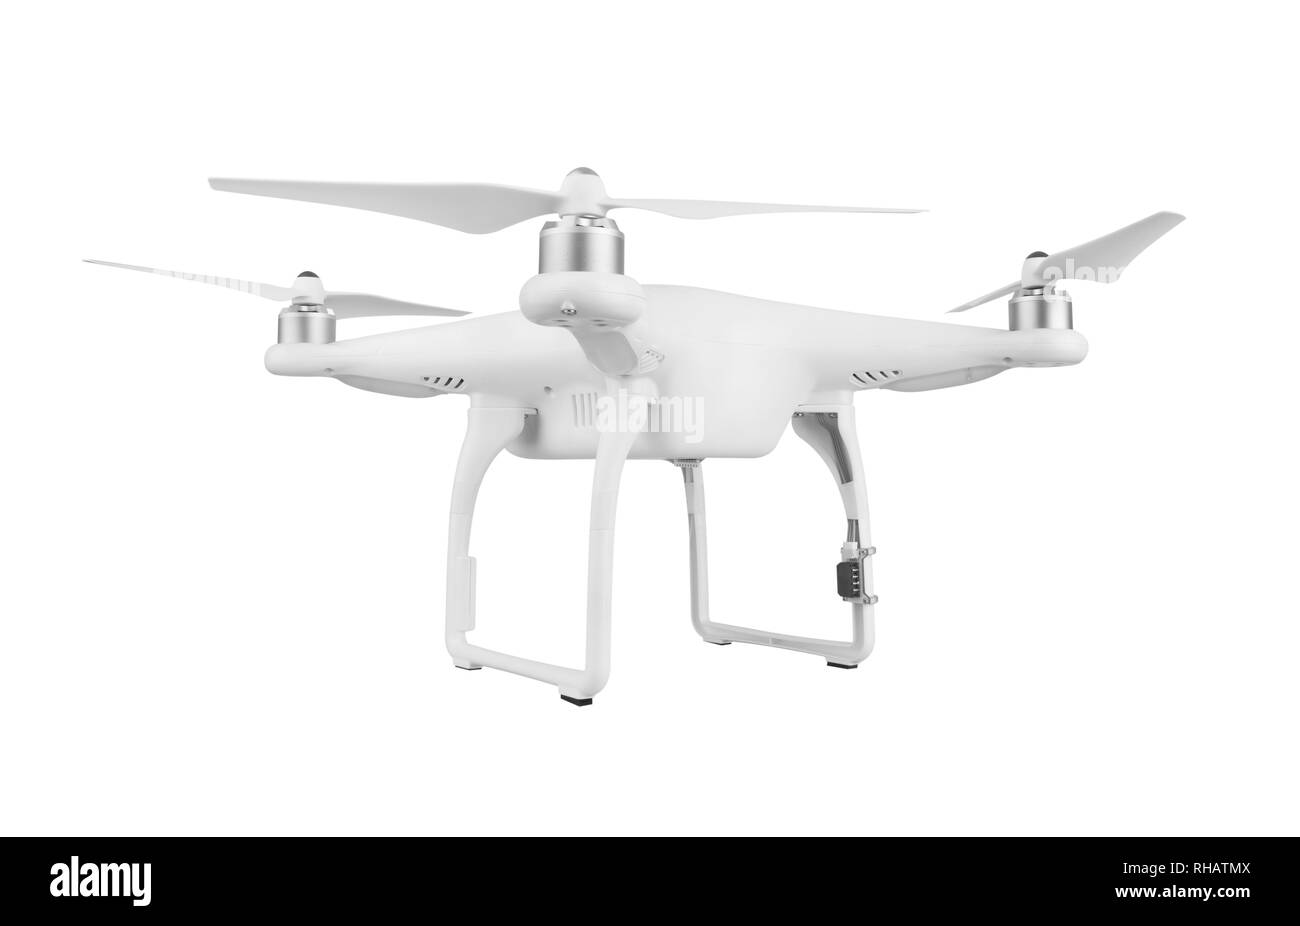 Drone, quadrocopter, isolated on white background. - Stock Image